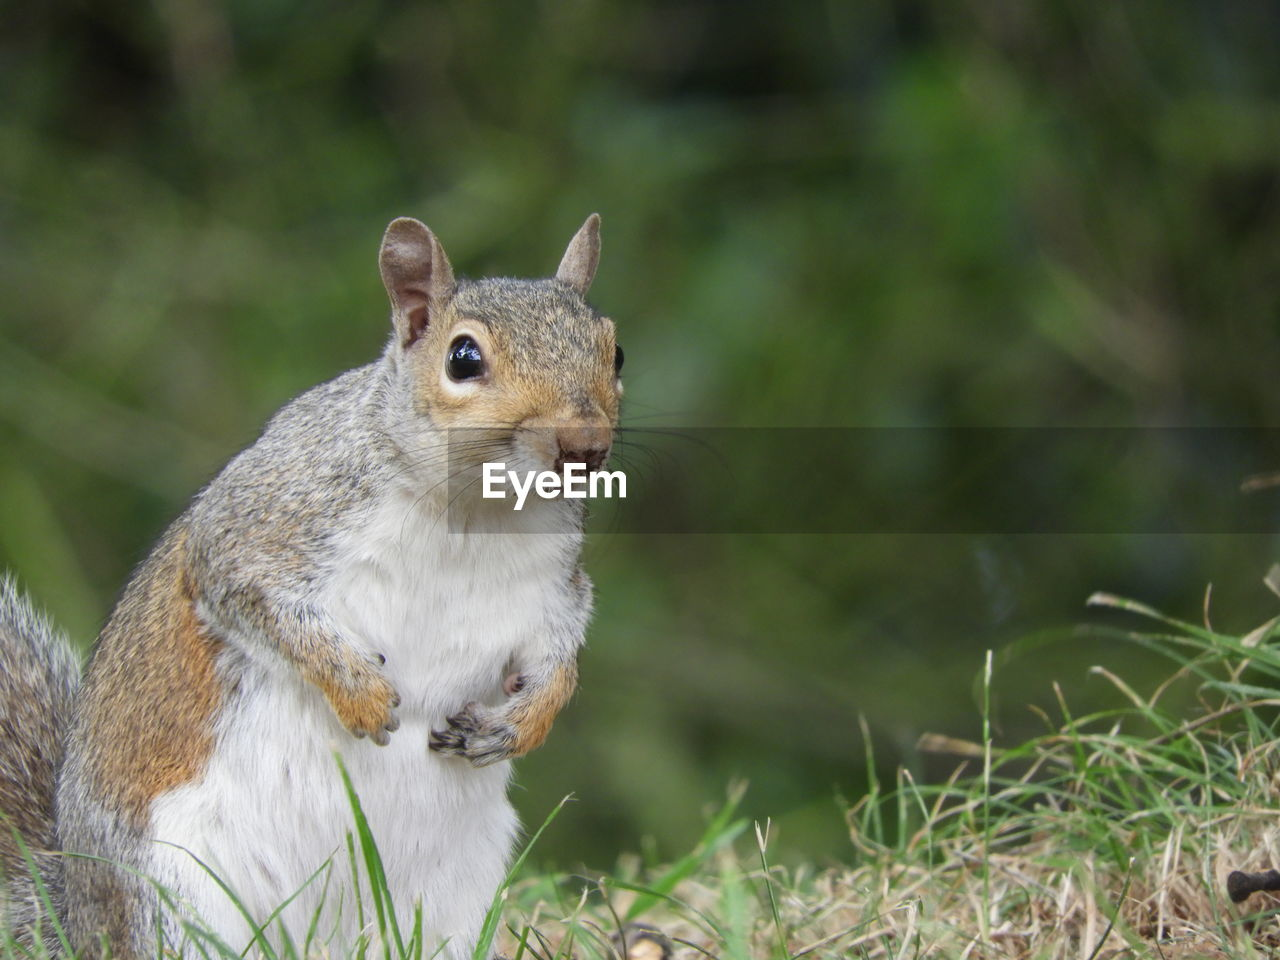 animal themes, one animal, animal, animal wildlife, mammal, rodent, animals in the wild, squirrel, focus on foreground, vertebrate, close-up, no people, land, day, nature, field, plant, outdoors, eating, looking, whisker, herbivorous